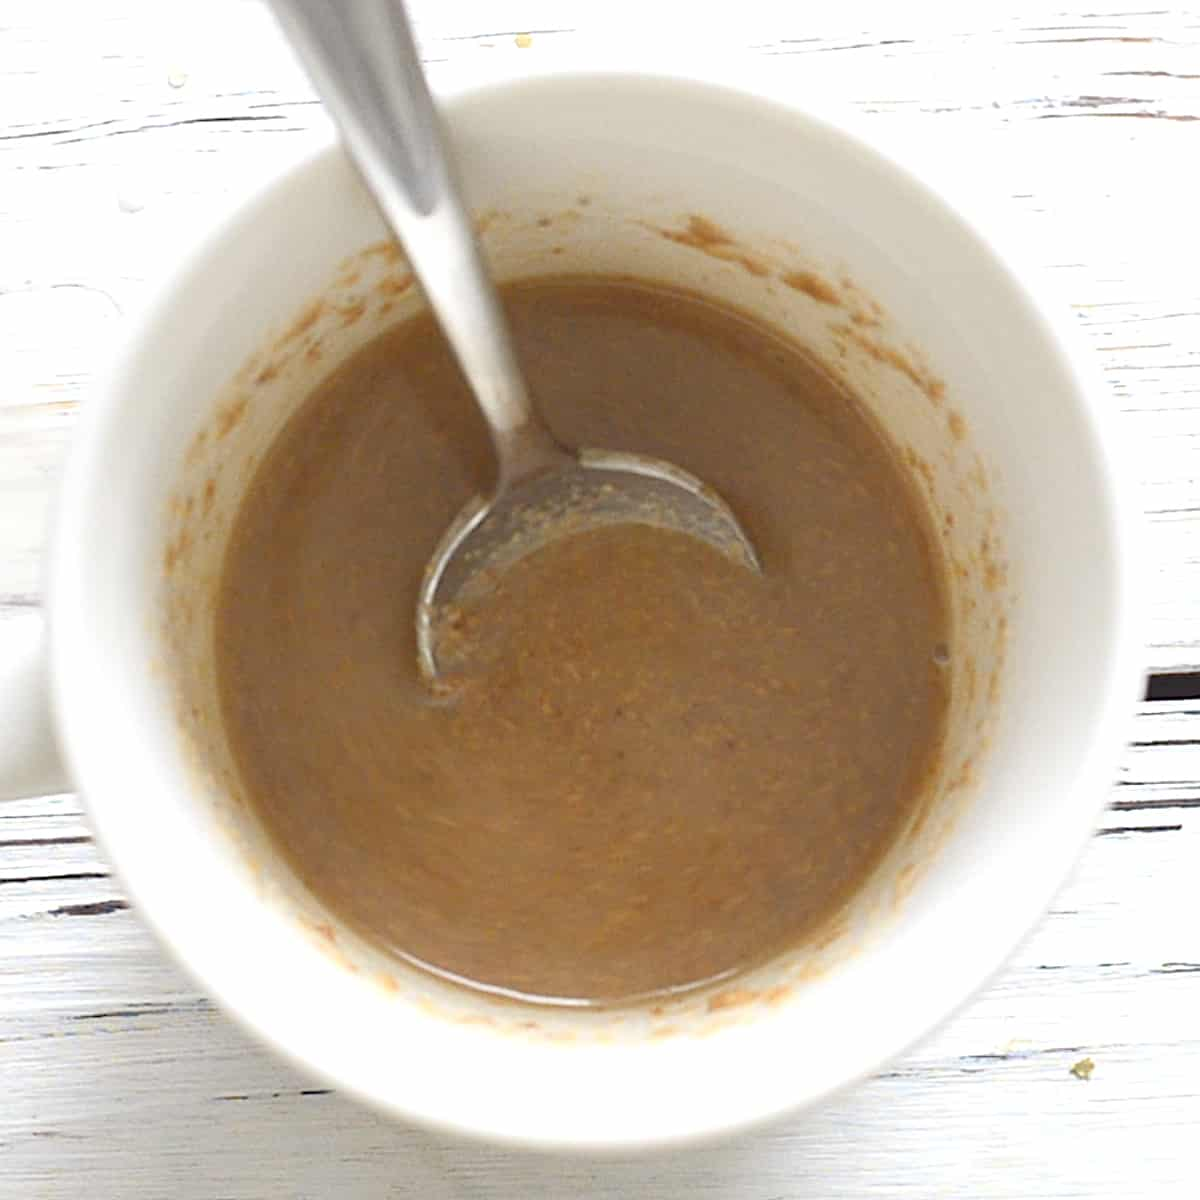 a mug with nut butter, plant milk and vanilla mixed up in it